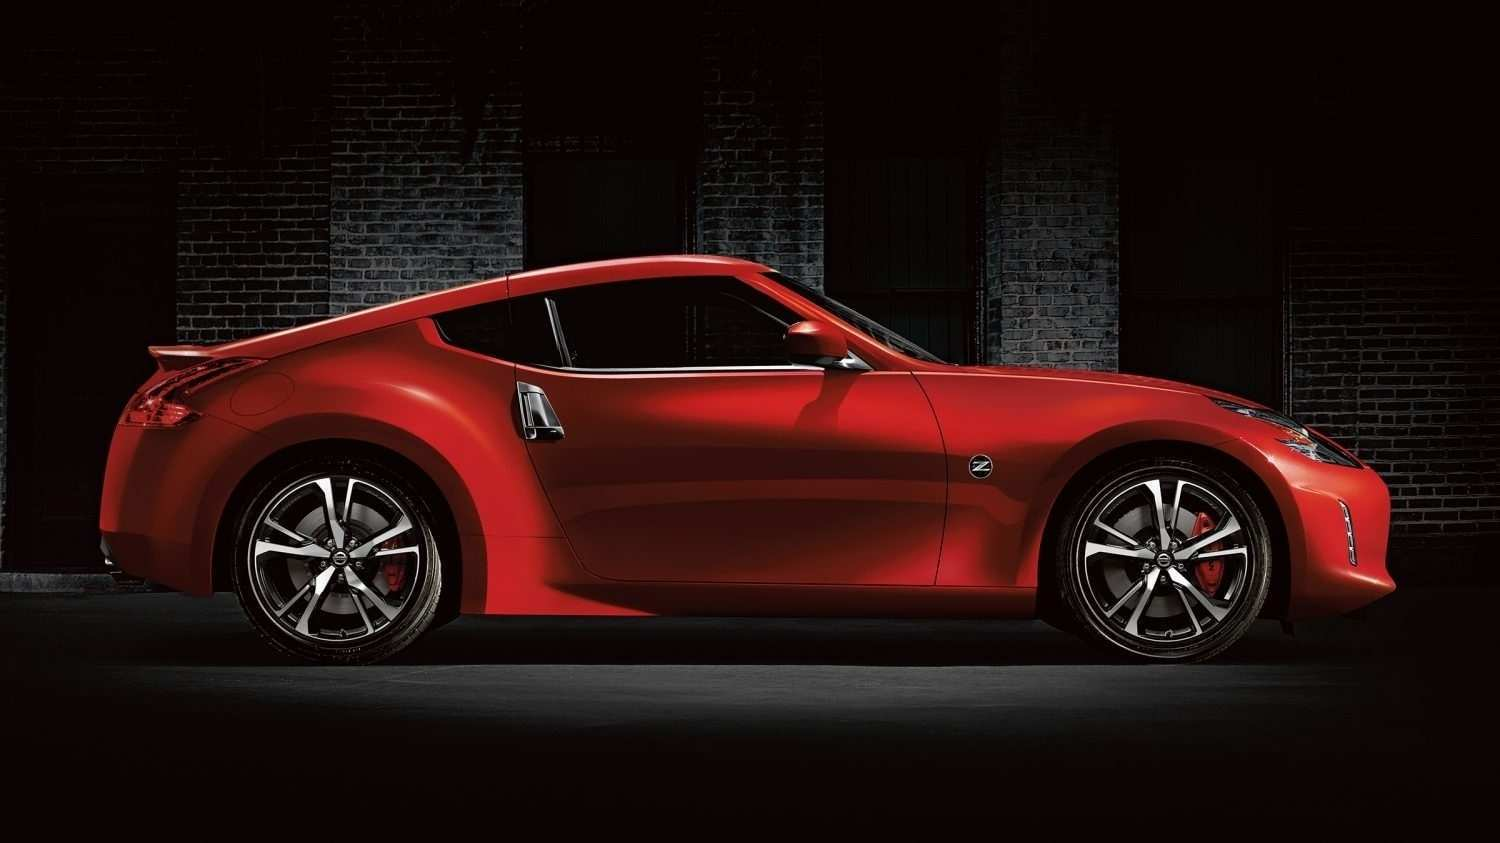 17 Concept of 2019 Nissan Z Spy Wallpaper with 2019 Nissan Z Spy